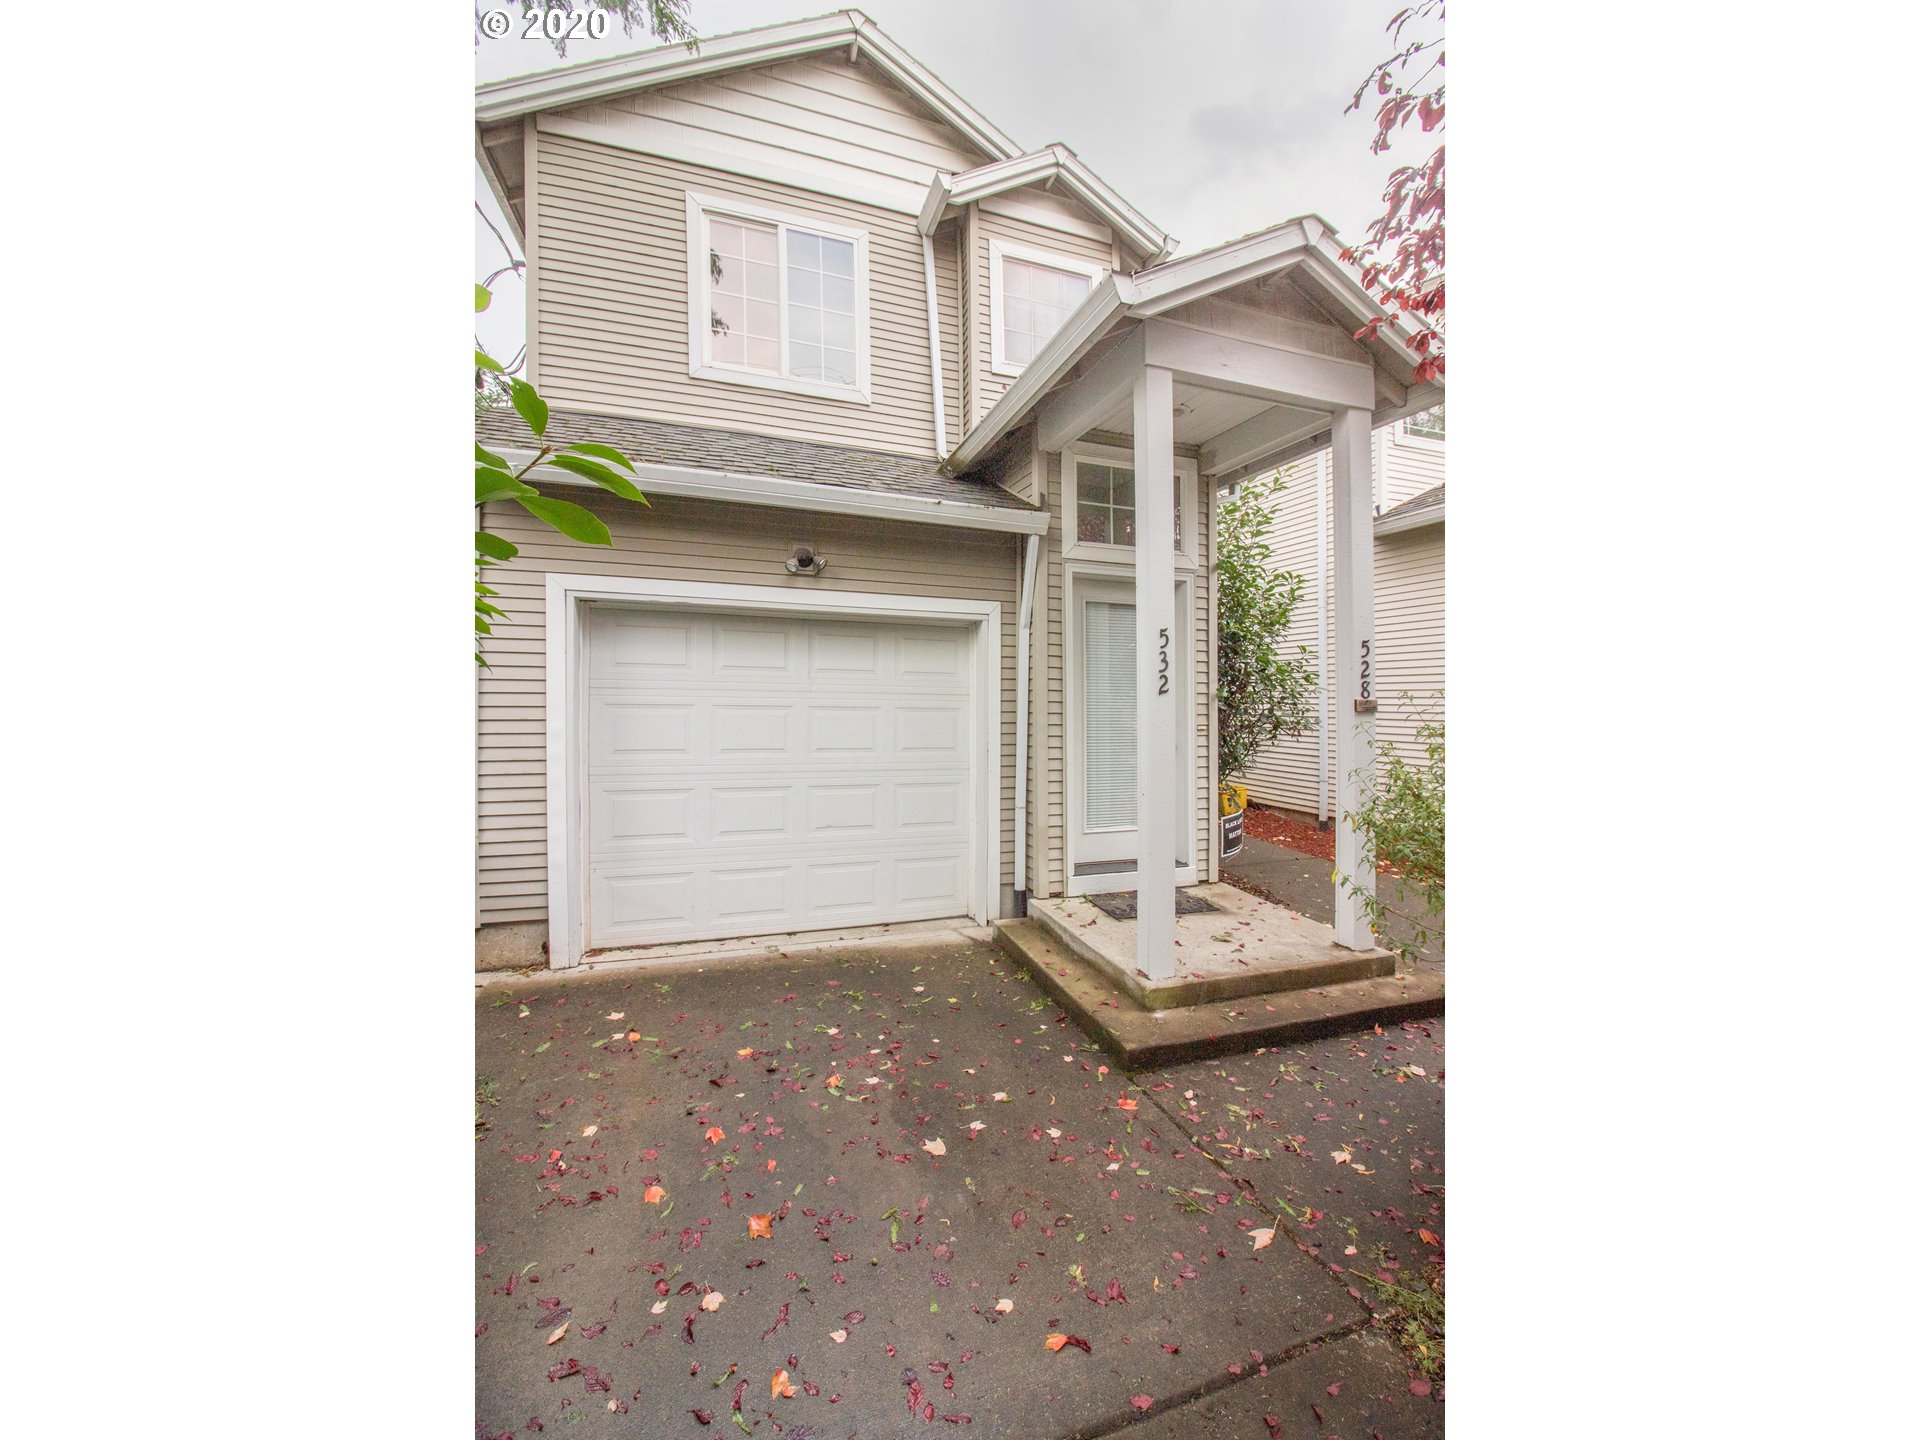 Awesome location in the Montavilla Neighborhood, close to shopping, public transportation, MAX lightrail & 2 miles to Mt Tabor Park! Duplex has upstairs unit and main floor unit-each has it's own separate entrance, kitchen, and bathroom-upstairs is 2 bedroom, main has one bedroom. Attached garage & driveway, with nice trees & landscape. Could to Airbnb, multigenerational family, or rent one or two units! Well kept-good condition!